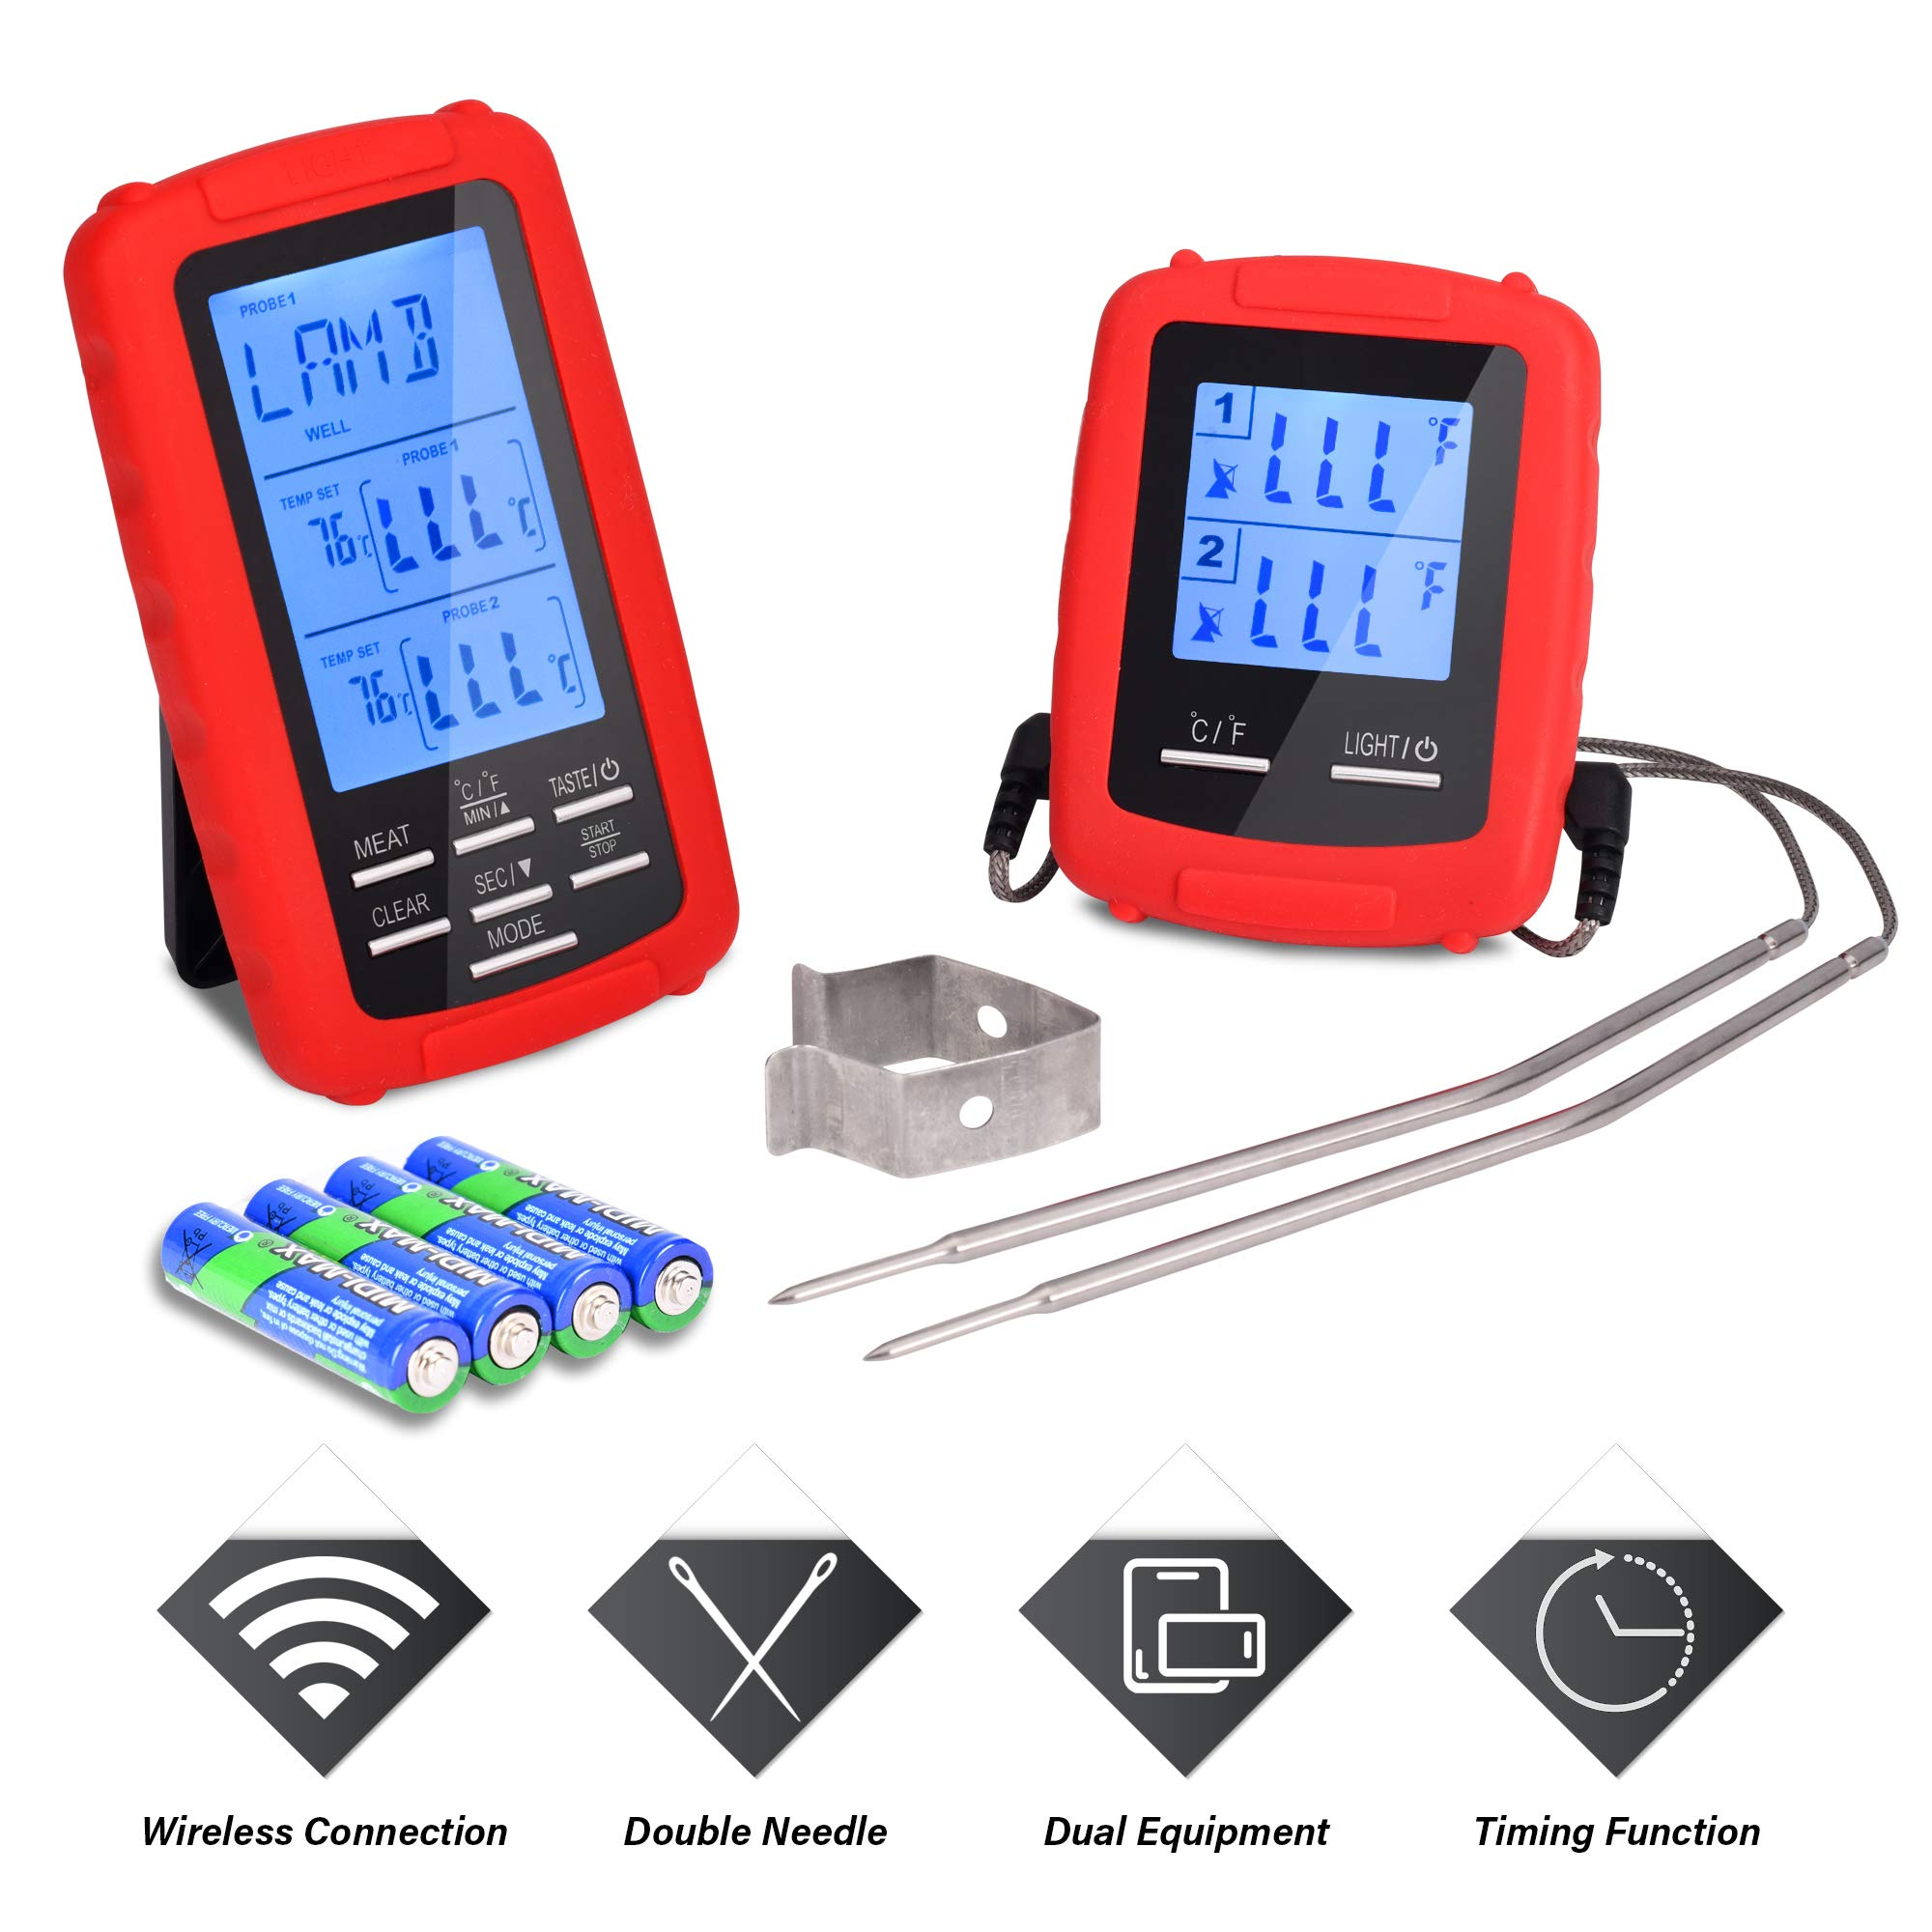 Myom Cooking Thermometers Premium Wireless Remote Digital Cooking Meat Thermometer with Dual Probe Perfect for Oven Smoker Grill BBQ Thermometer THANKS GIVING SPECIAL LOWEST PRICE by Myom Thermometers